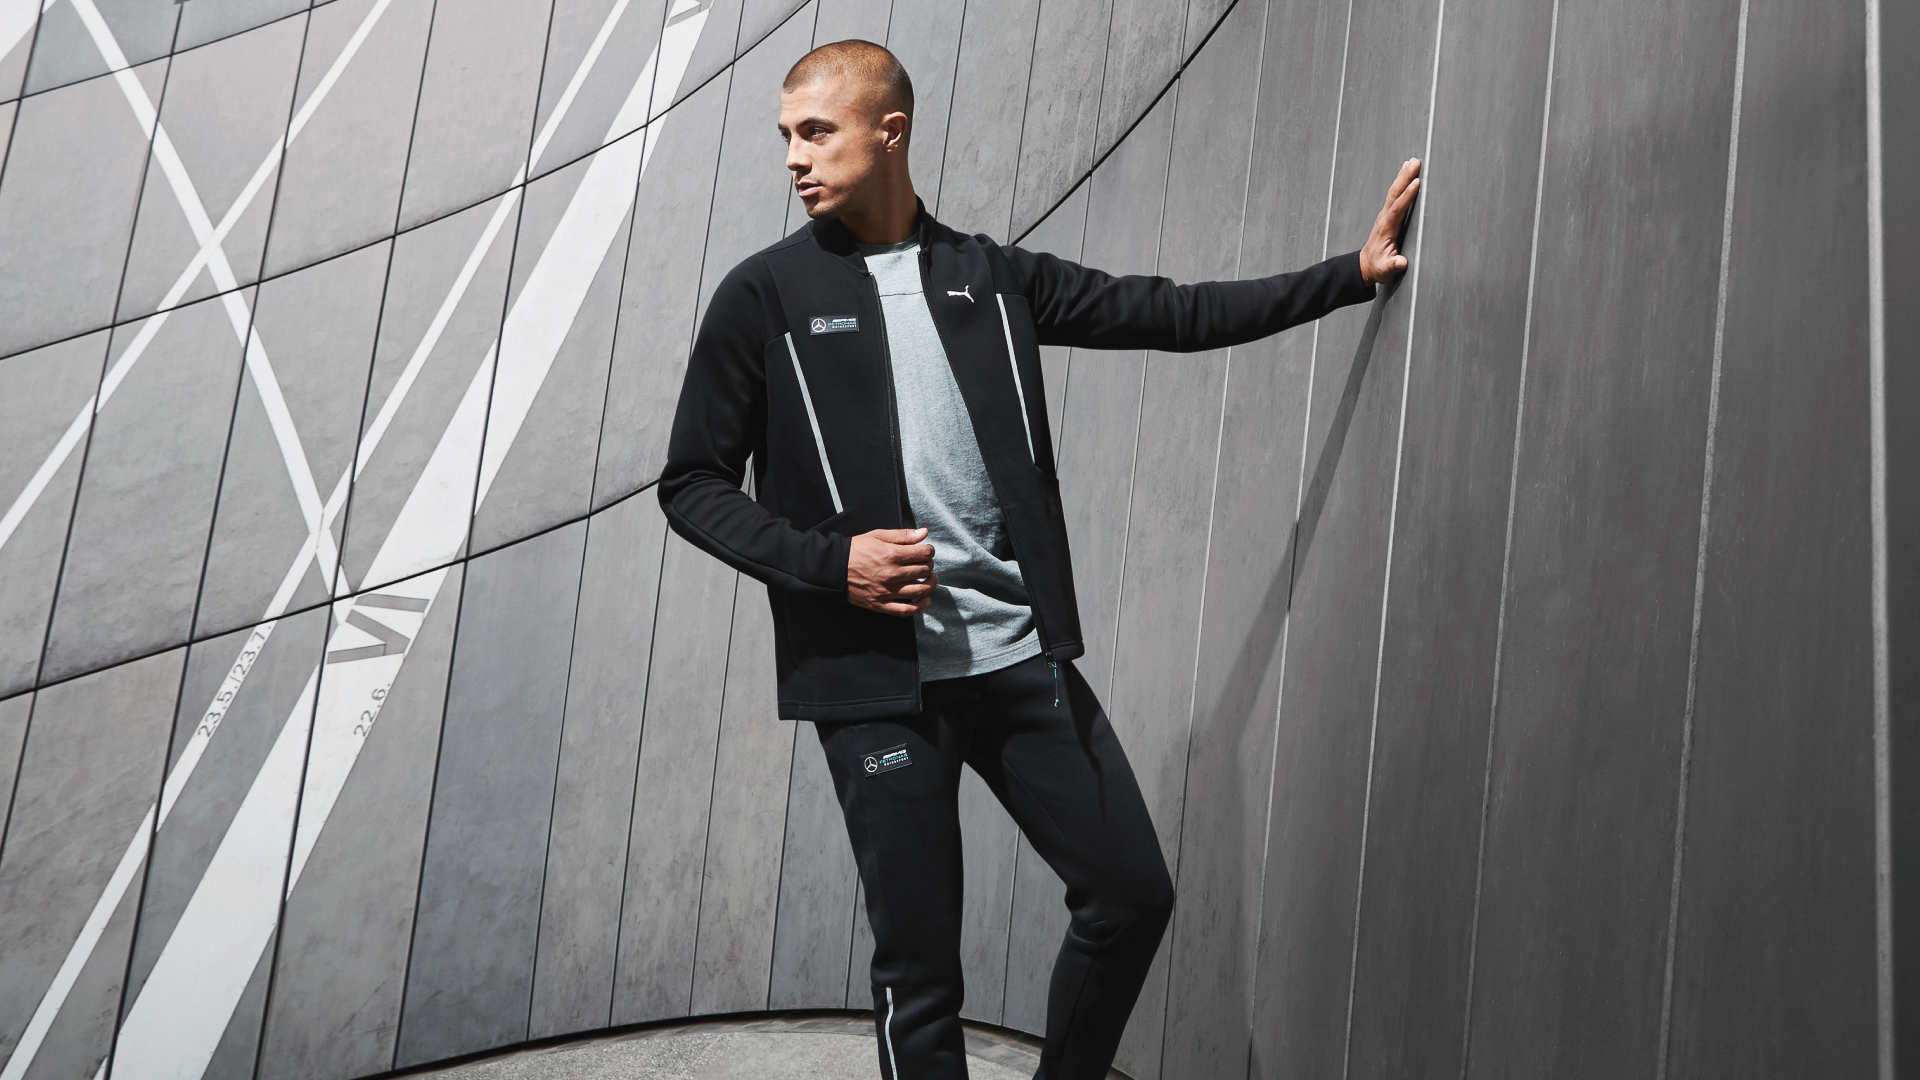 Model in PUMA tracksuit